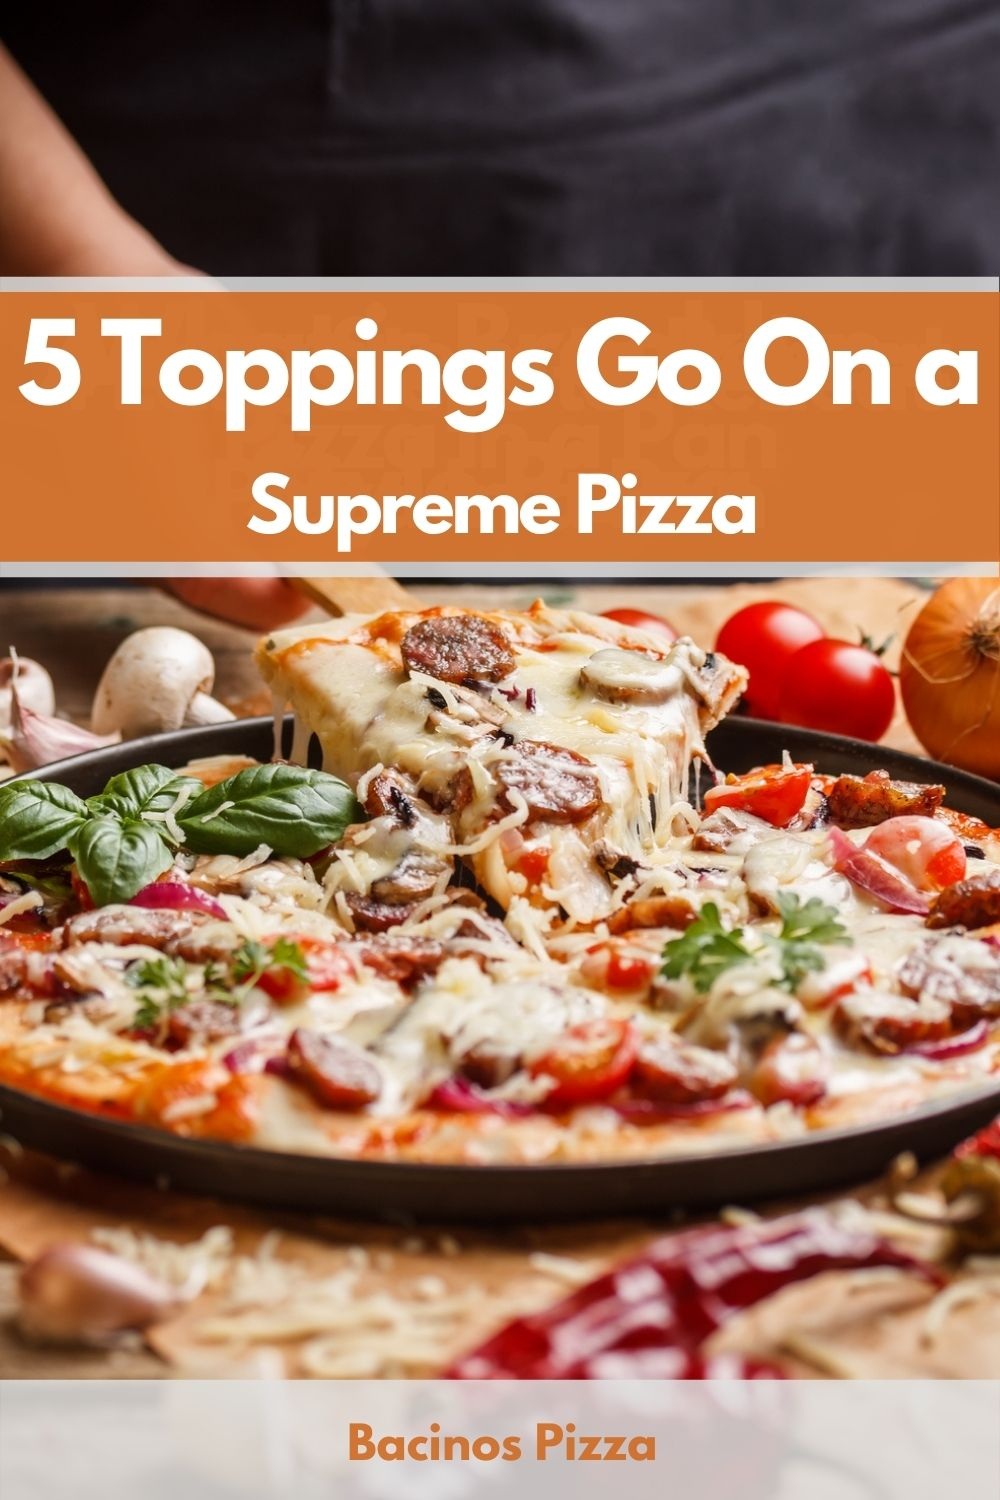 5 Toppings Go On a Supreme Pizza pin 2